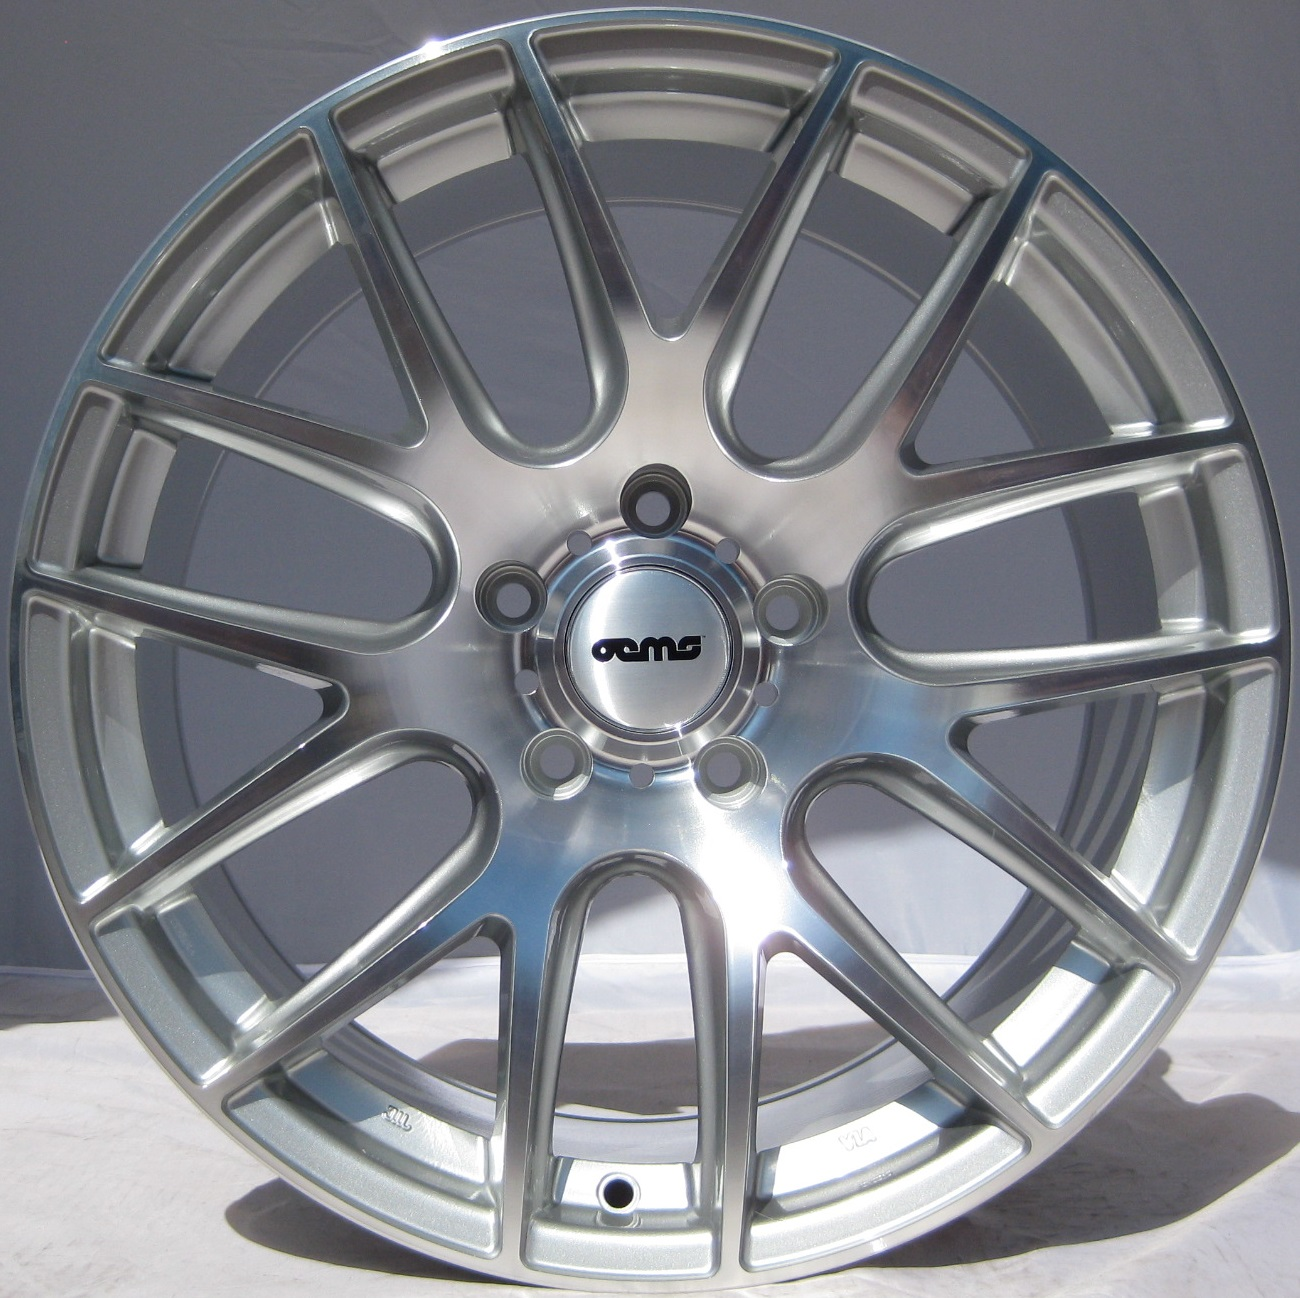 "NEW 18"" OEMS 111 ALLOY WHEELS IN SILVER WITH POLISHED FACE"